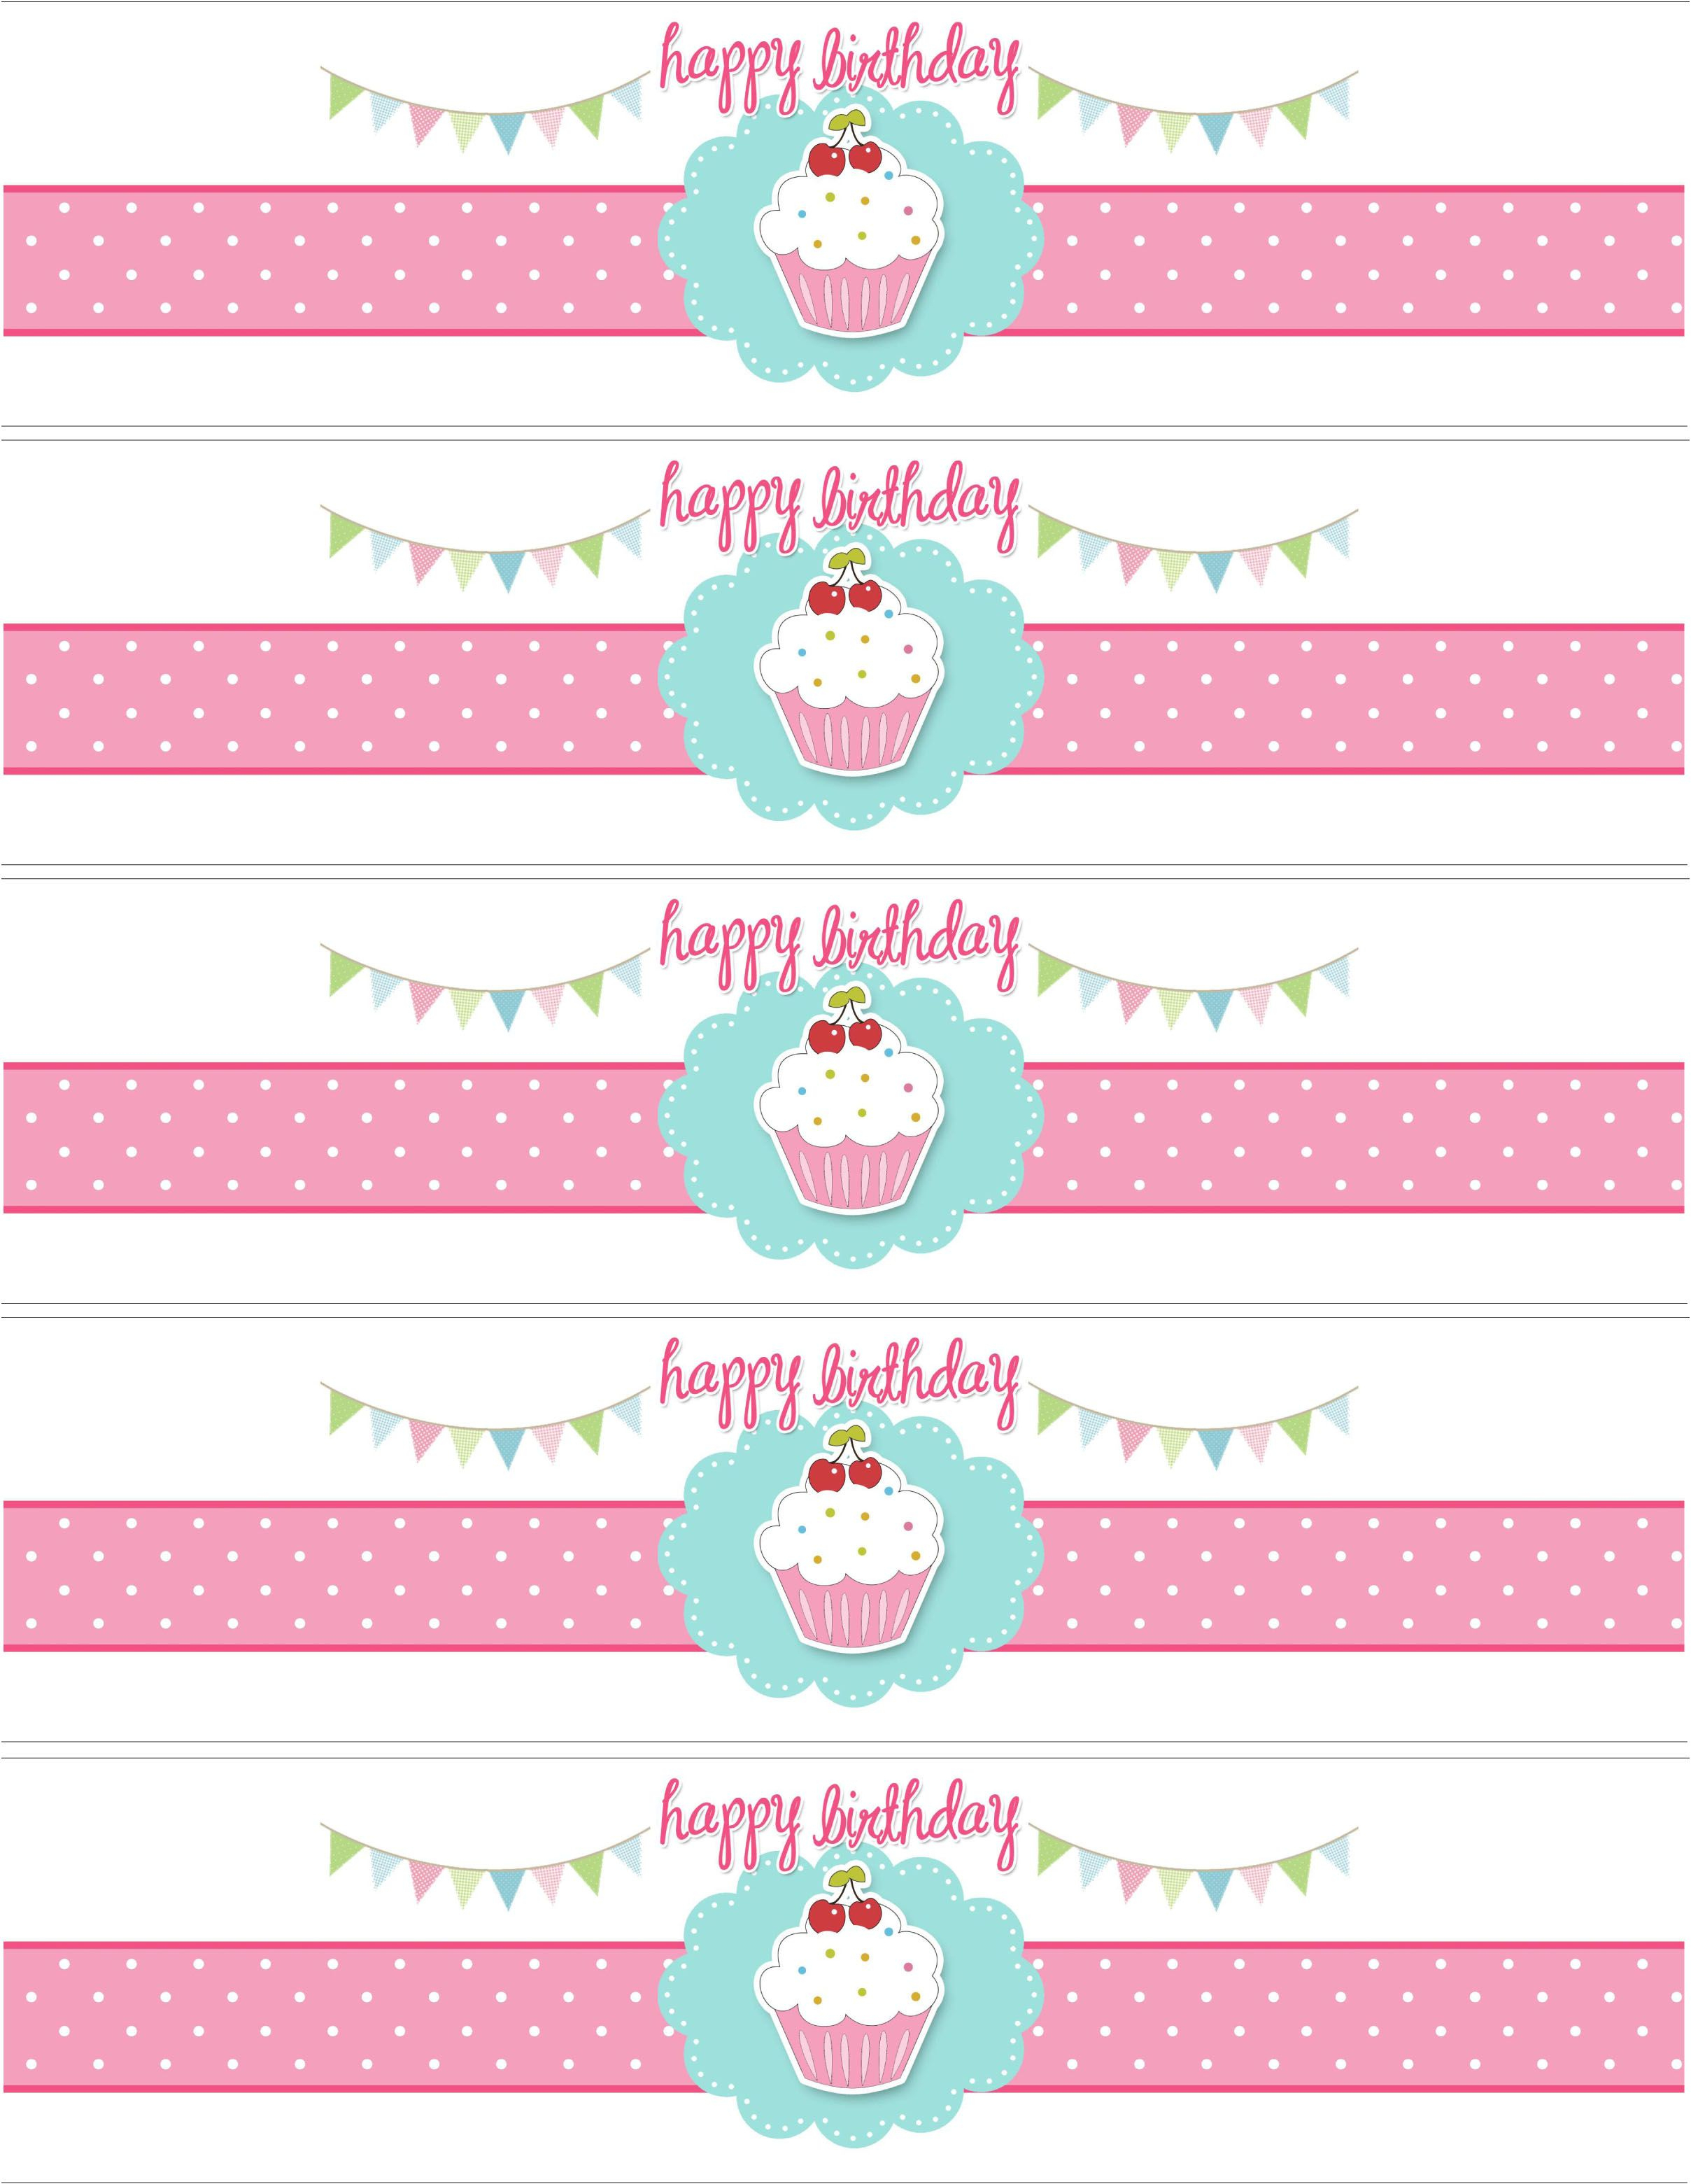 Cupcake Birthday Party With Free Printables | Diy Birthday Party - Free Printable Water Bottle Label Template